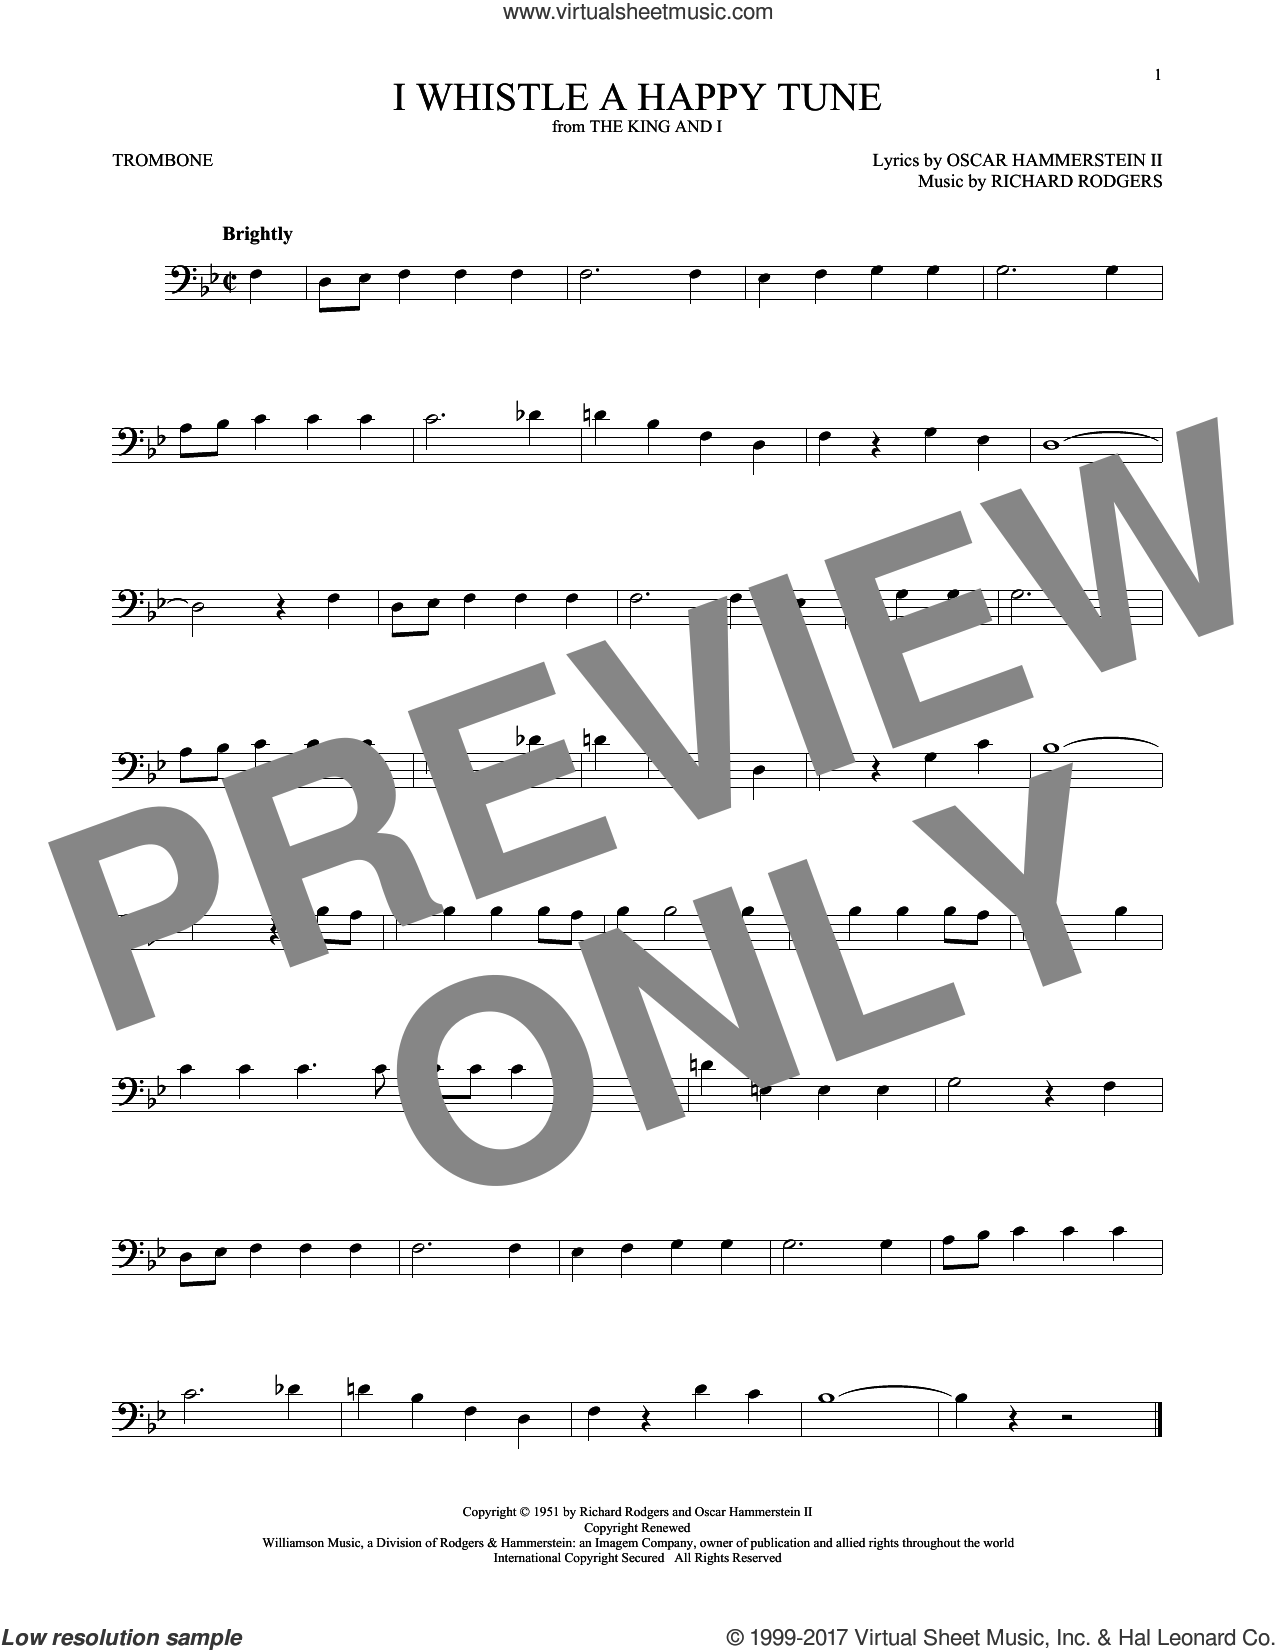 I Whistle A Happy Tune sheet music for trombone solo by Rodgers & Hammerstein, Oscar II Hammerstein and Richard Rodgers, intermediate skill level